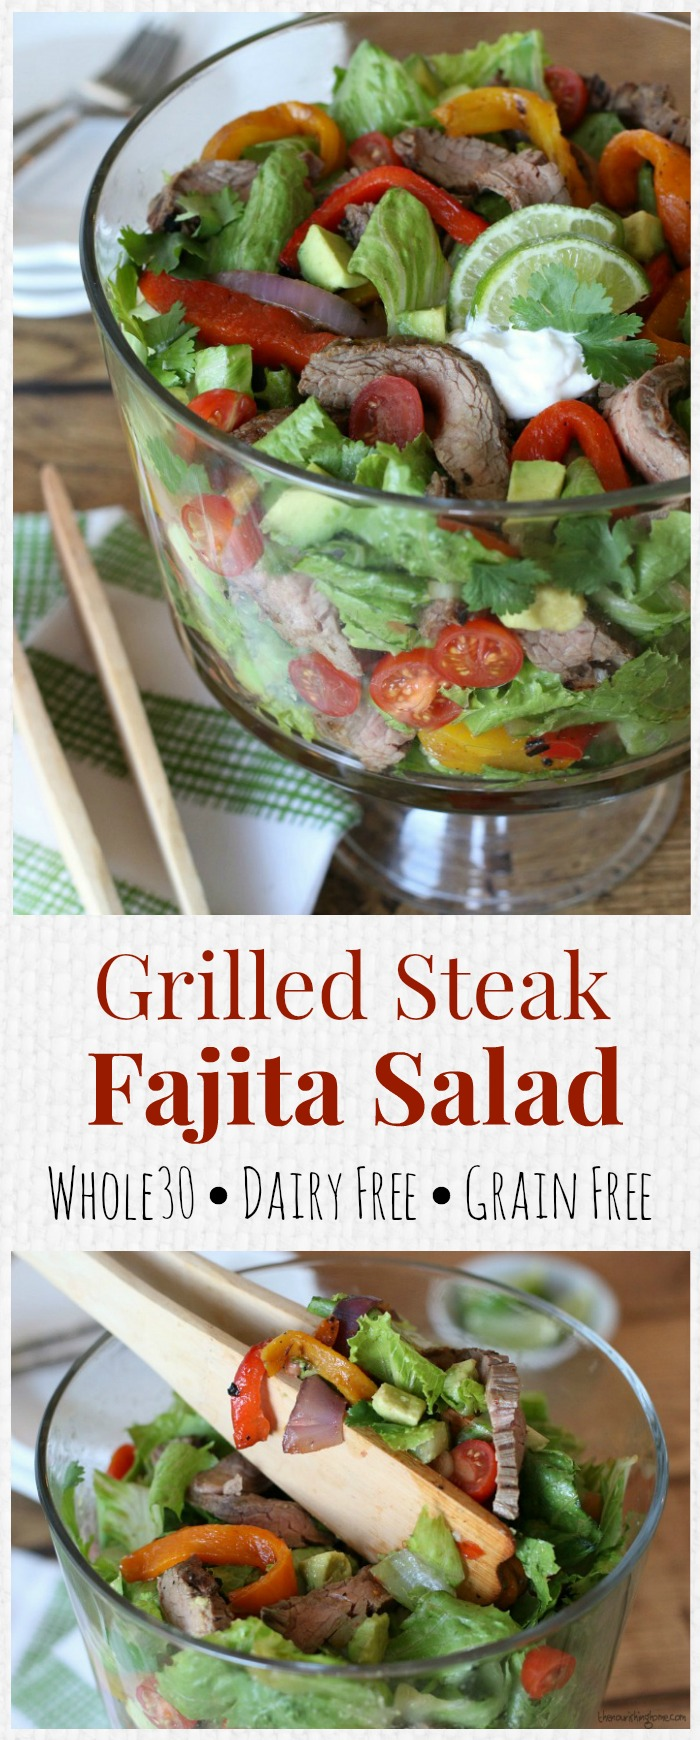 Grilled Fajita Salad {Whole30, DF, GF}